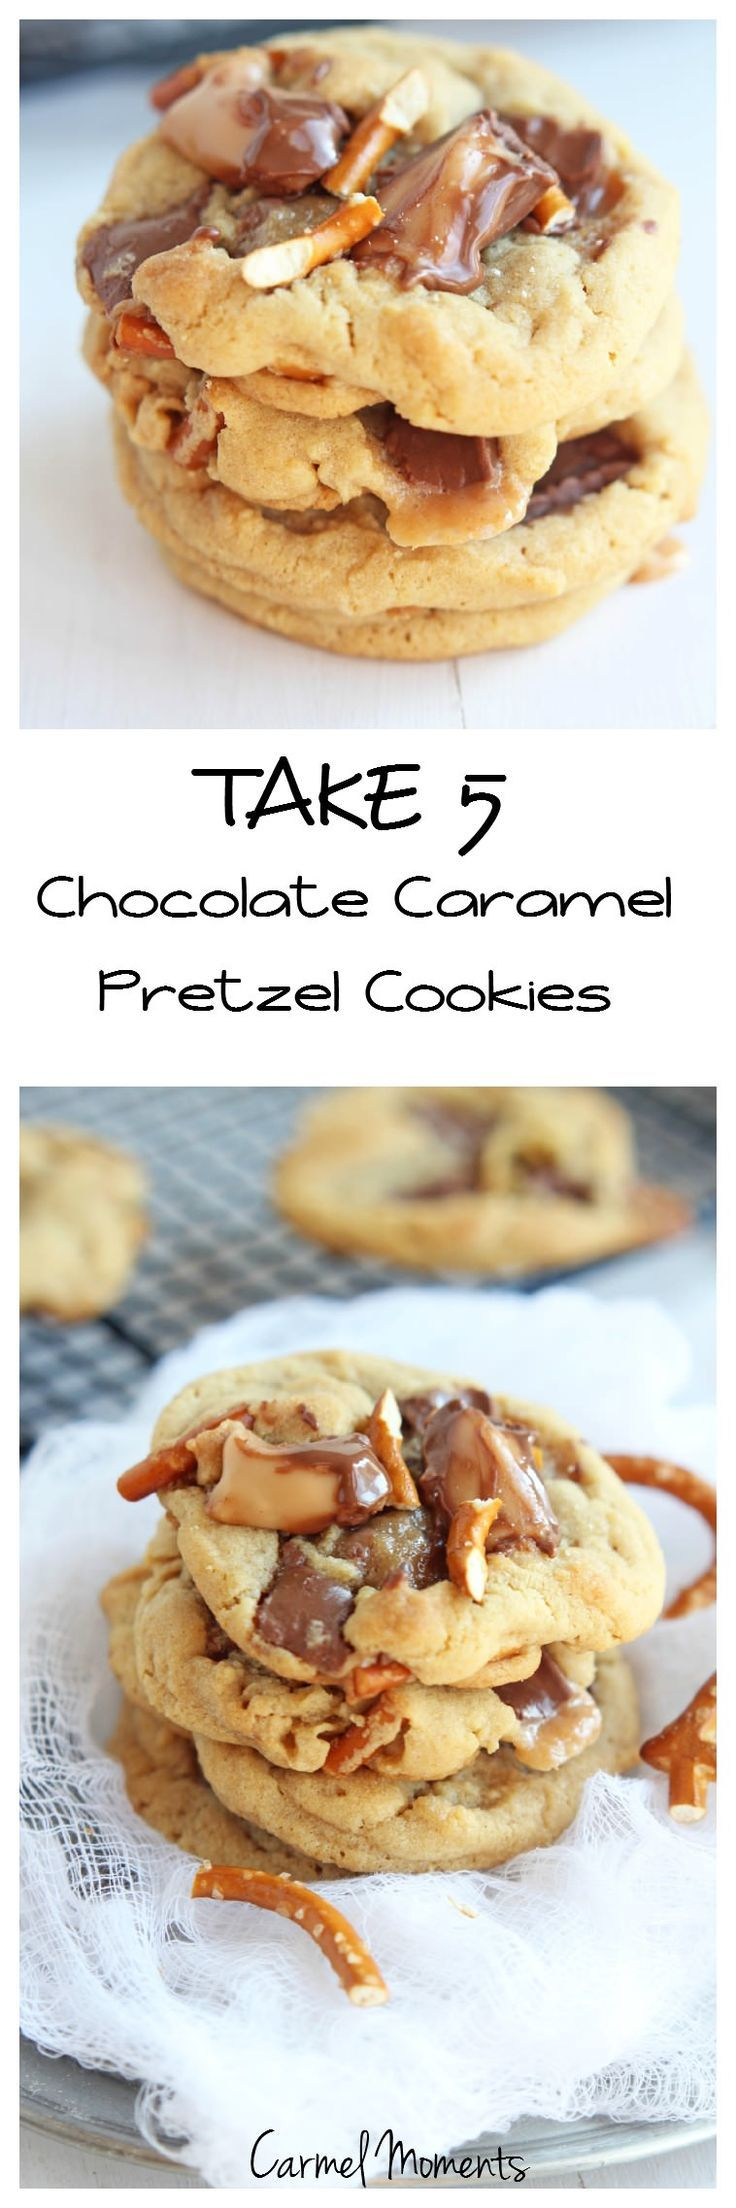 Take 5 Chocolate Caramel Pretzel Cookies --Everything delicious like the candy bar, chocolate, peanut butter, peanuts, caramel and chocolate.   http://gatherforbread.com